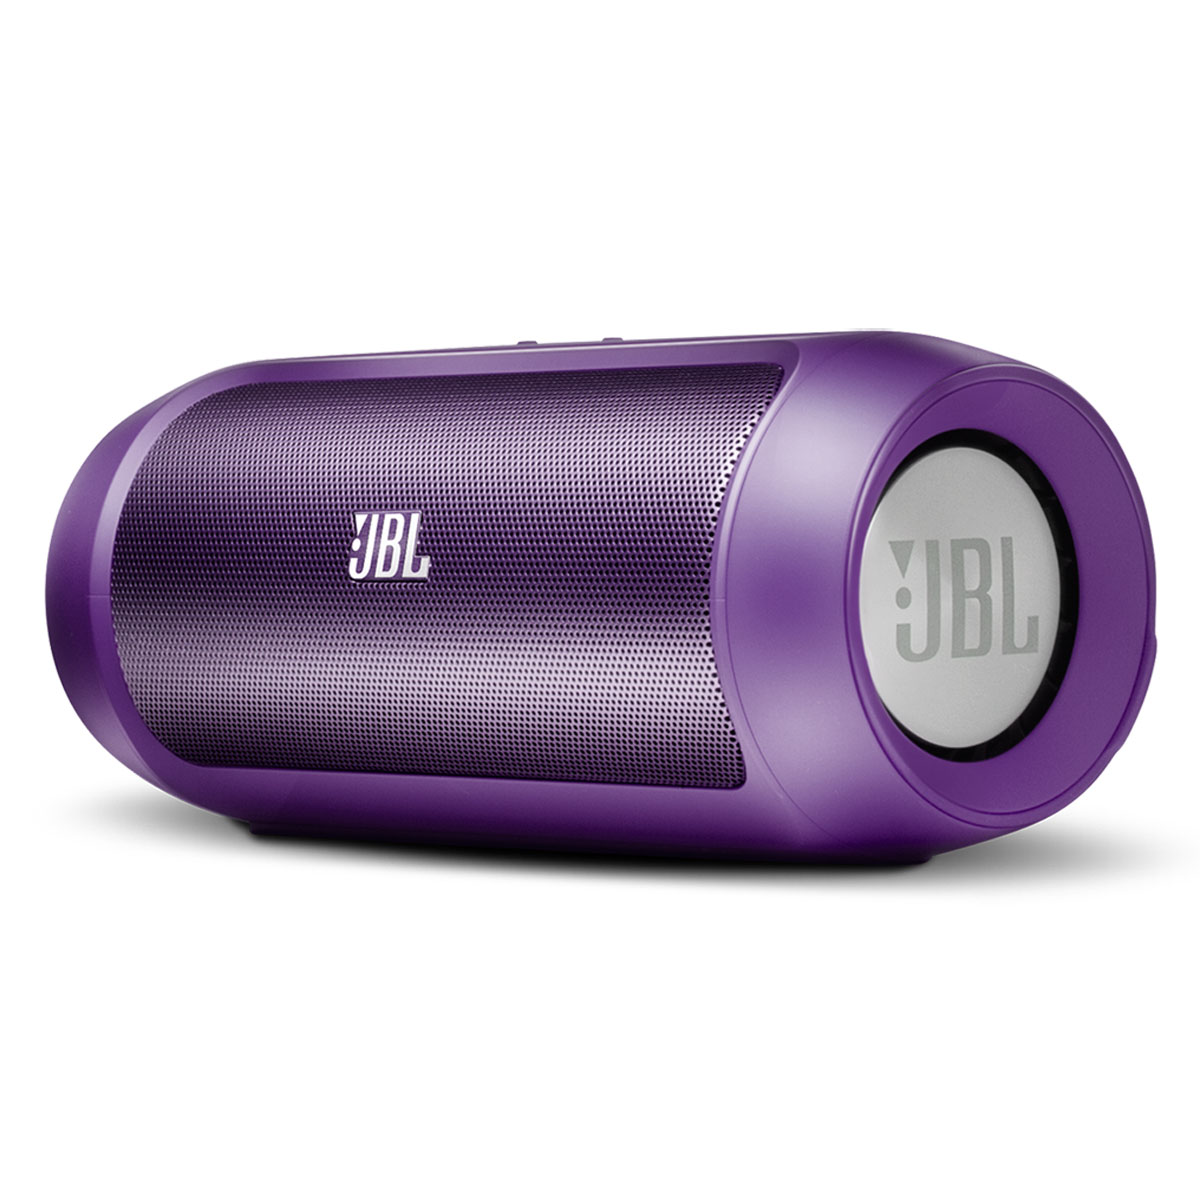 jbl charge 2 violet dock enceinte bluetooth jbl sur ldlc. Black Bedroom Furniture Sets. Home Design Ideas